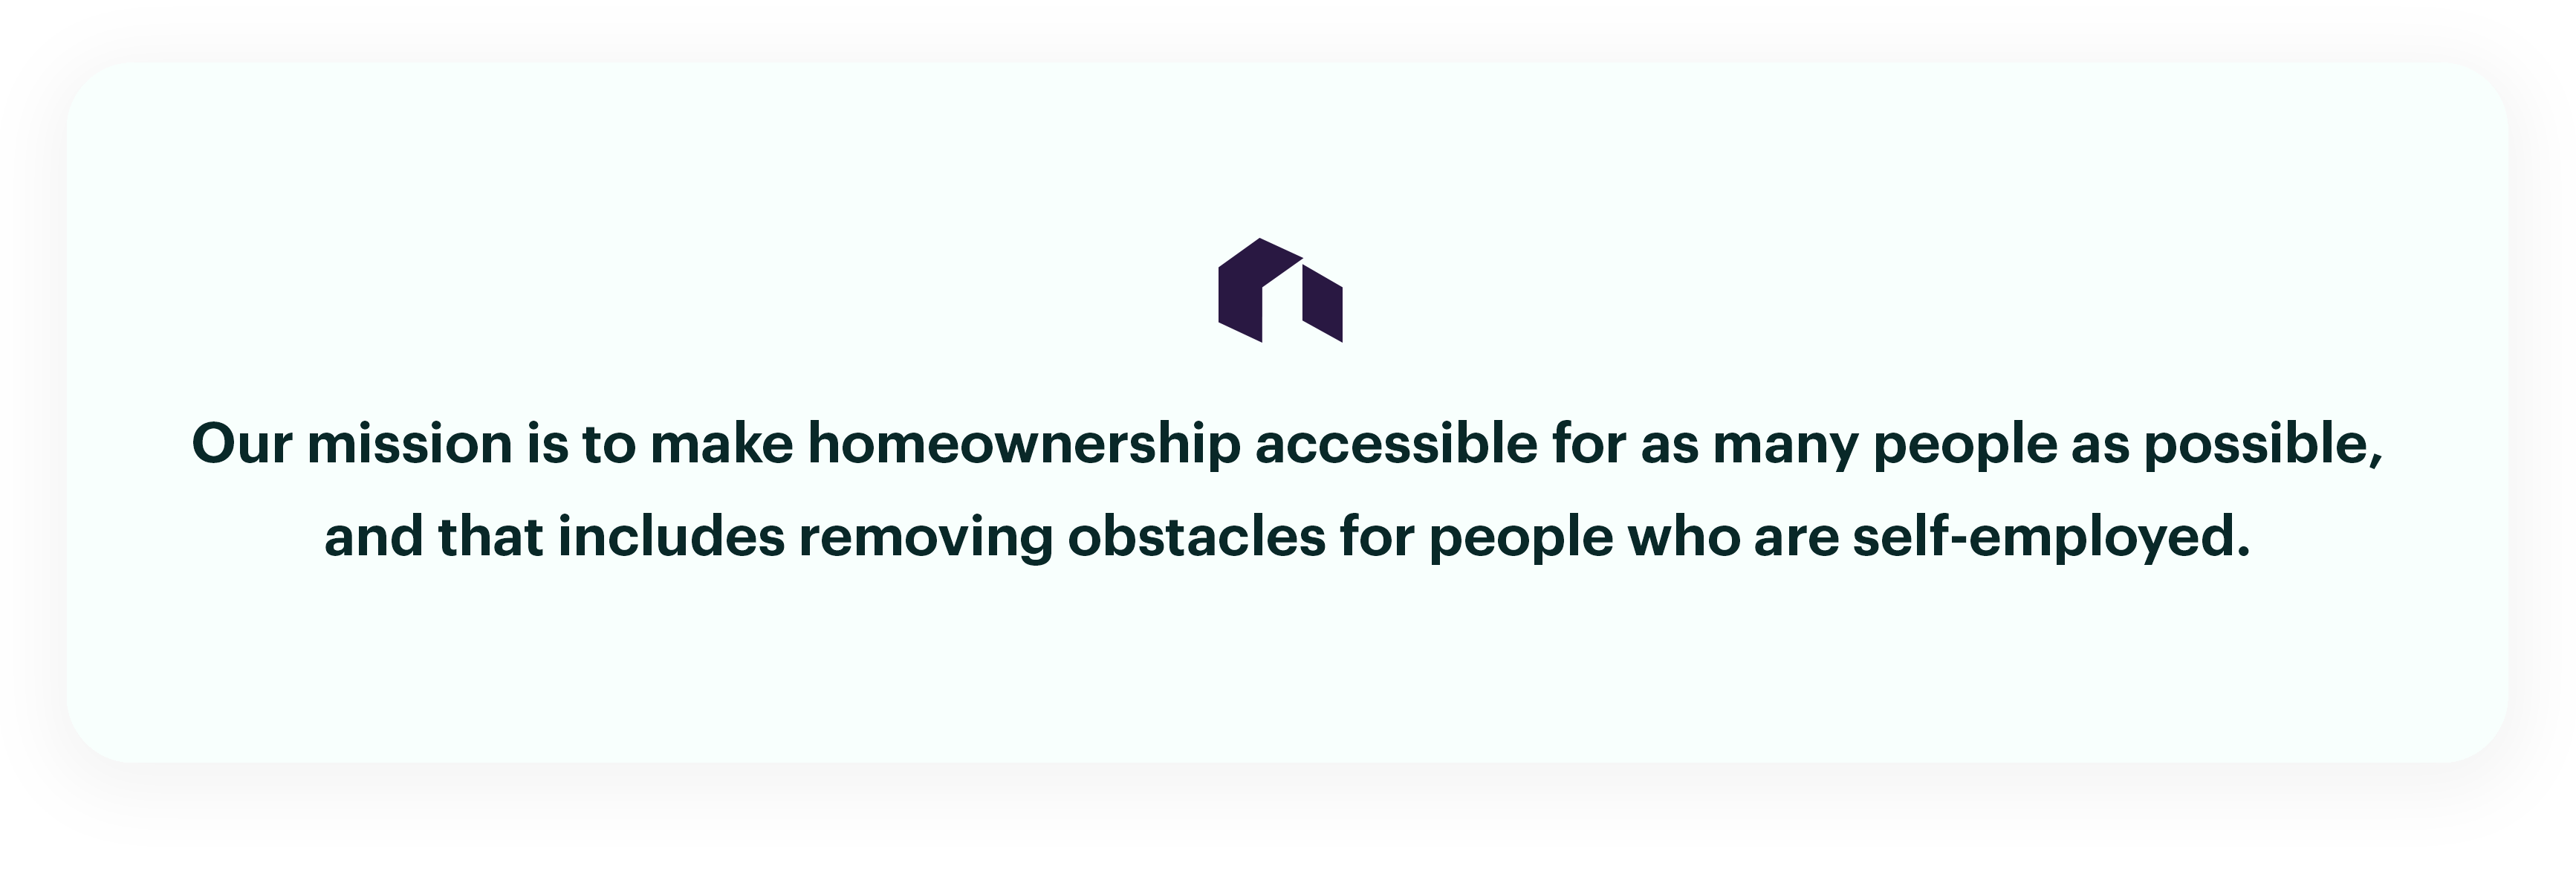 Our Mission is to Make Homeownership Accessible for as Many People as Possible, and that Includes Removing Obstacles for People Who Are Self-Employed